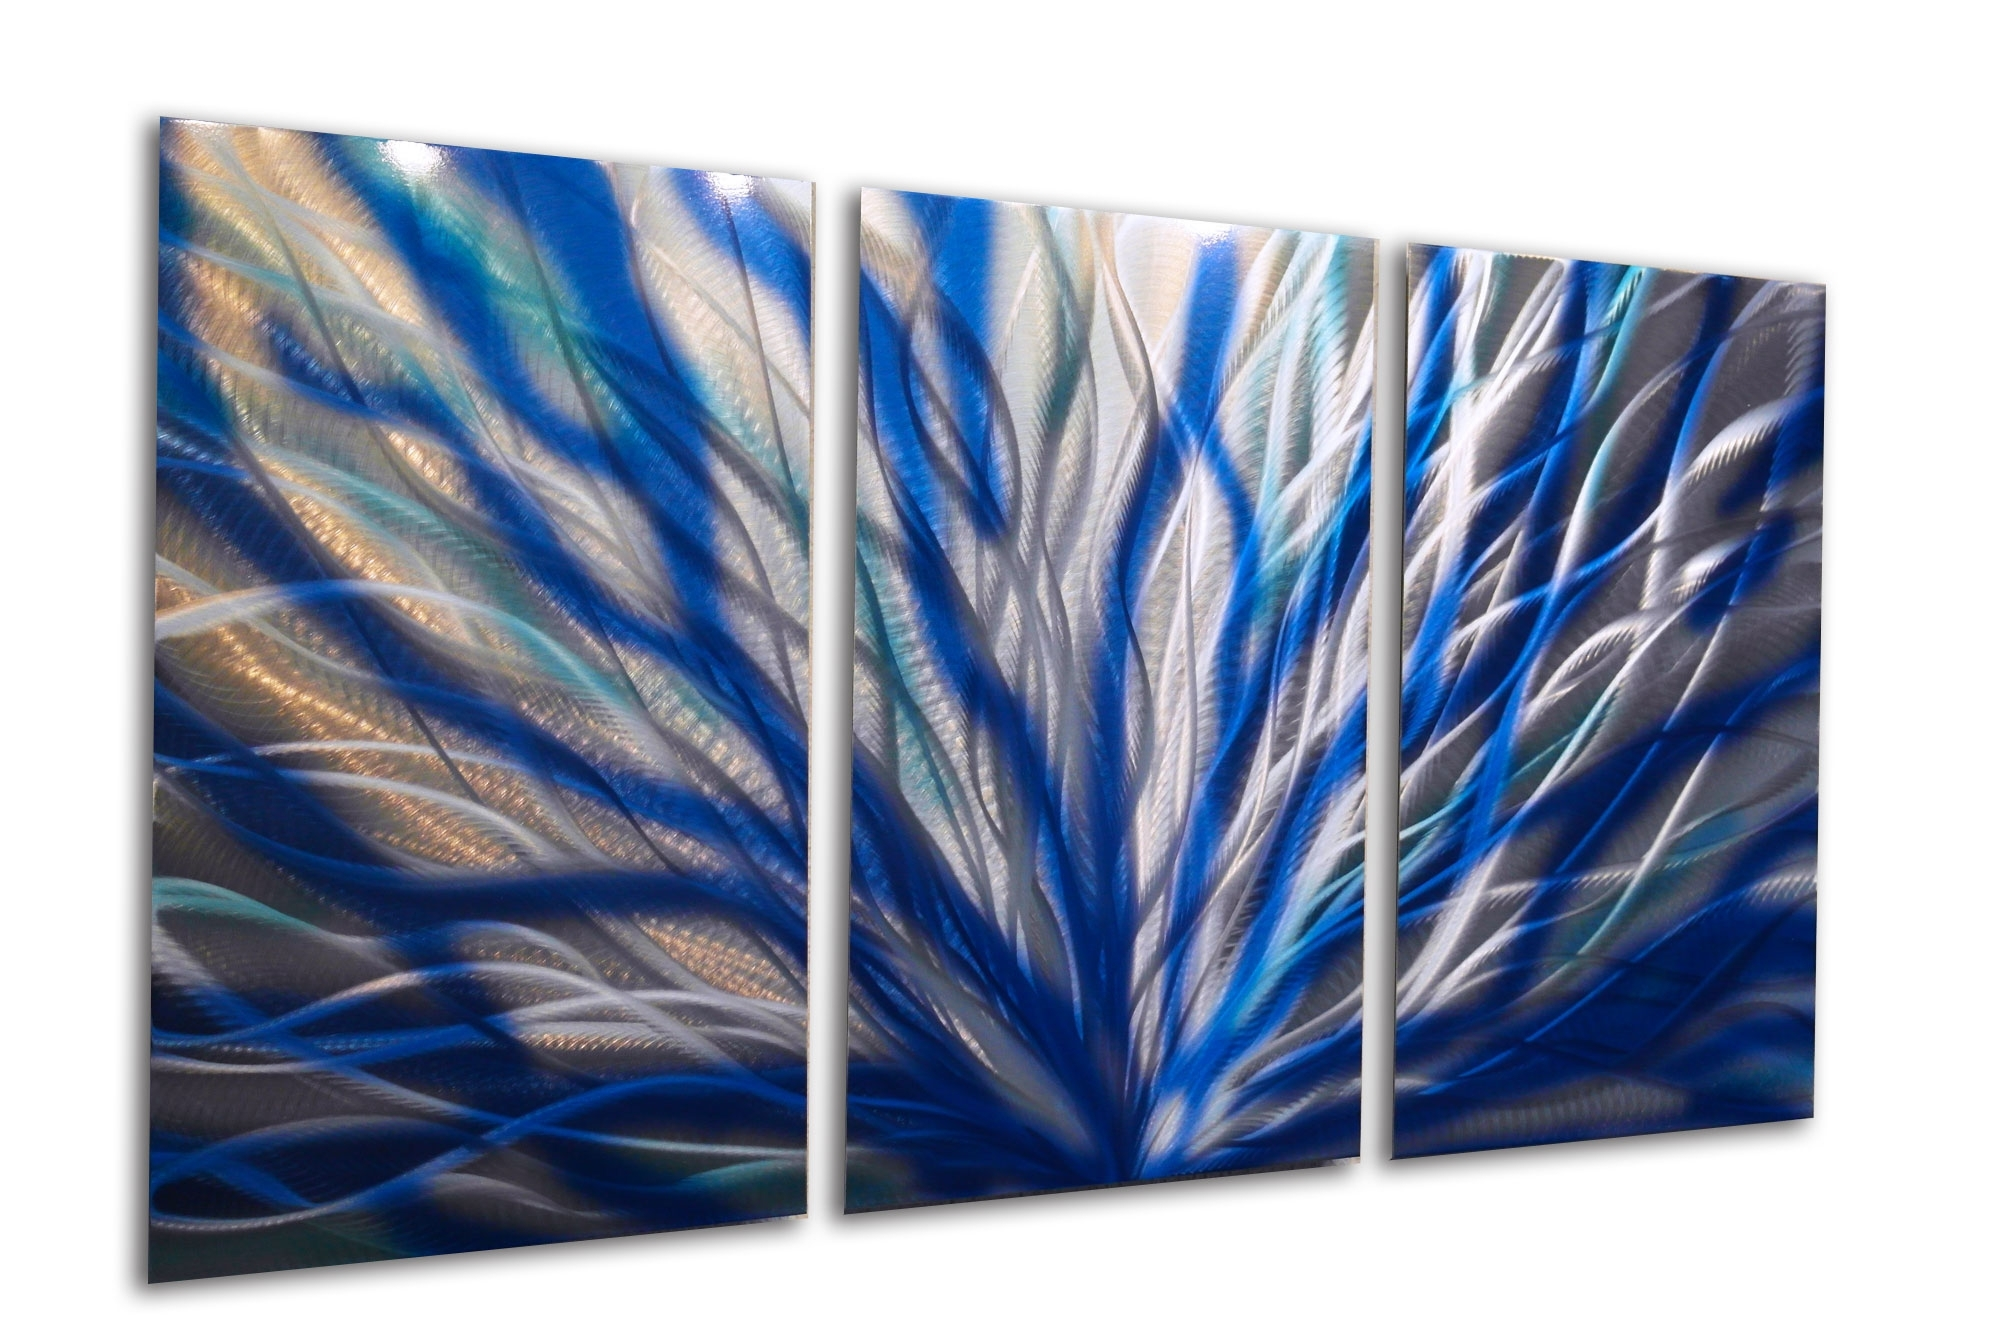 Radiance Blue 47 V2 – Metal Wall Art Abstract Sculpture Modern Regarding Best And Newest Abstract Leaves Wall Art (View 16 of 20)